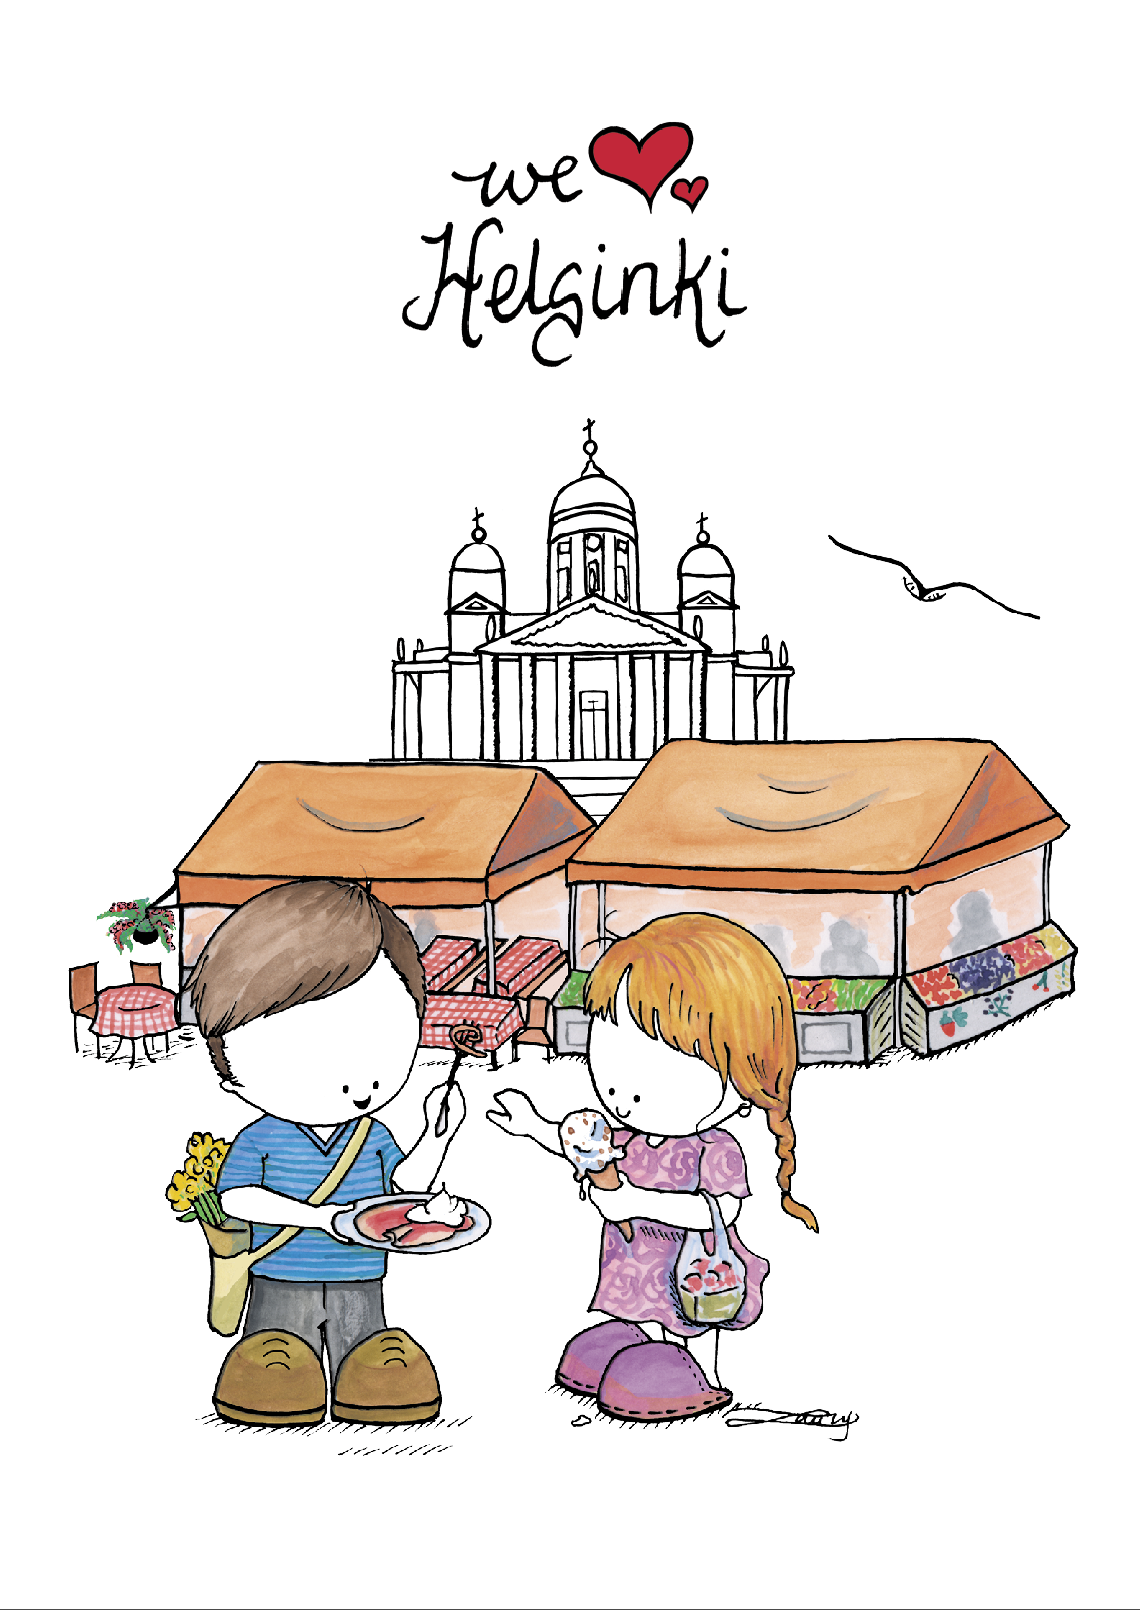 Helsinki's most vibrant market by the sea!